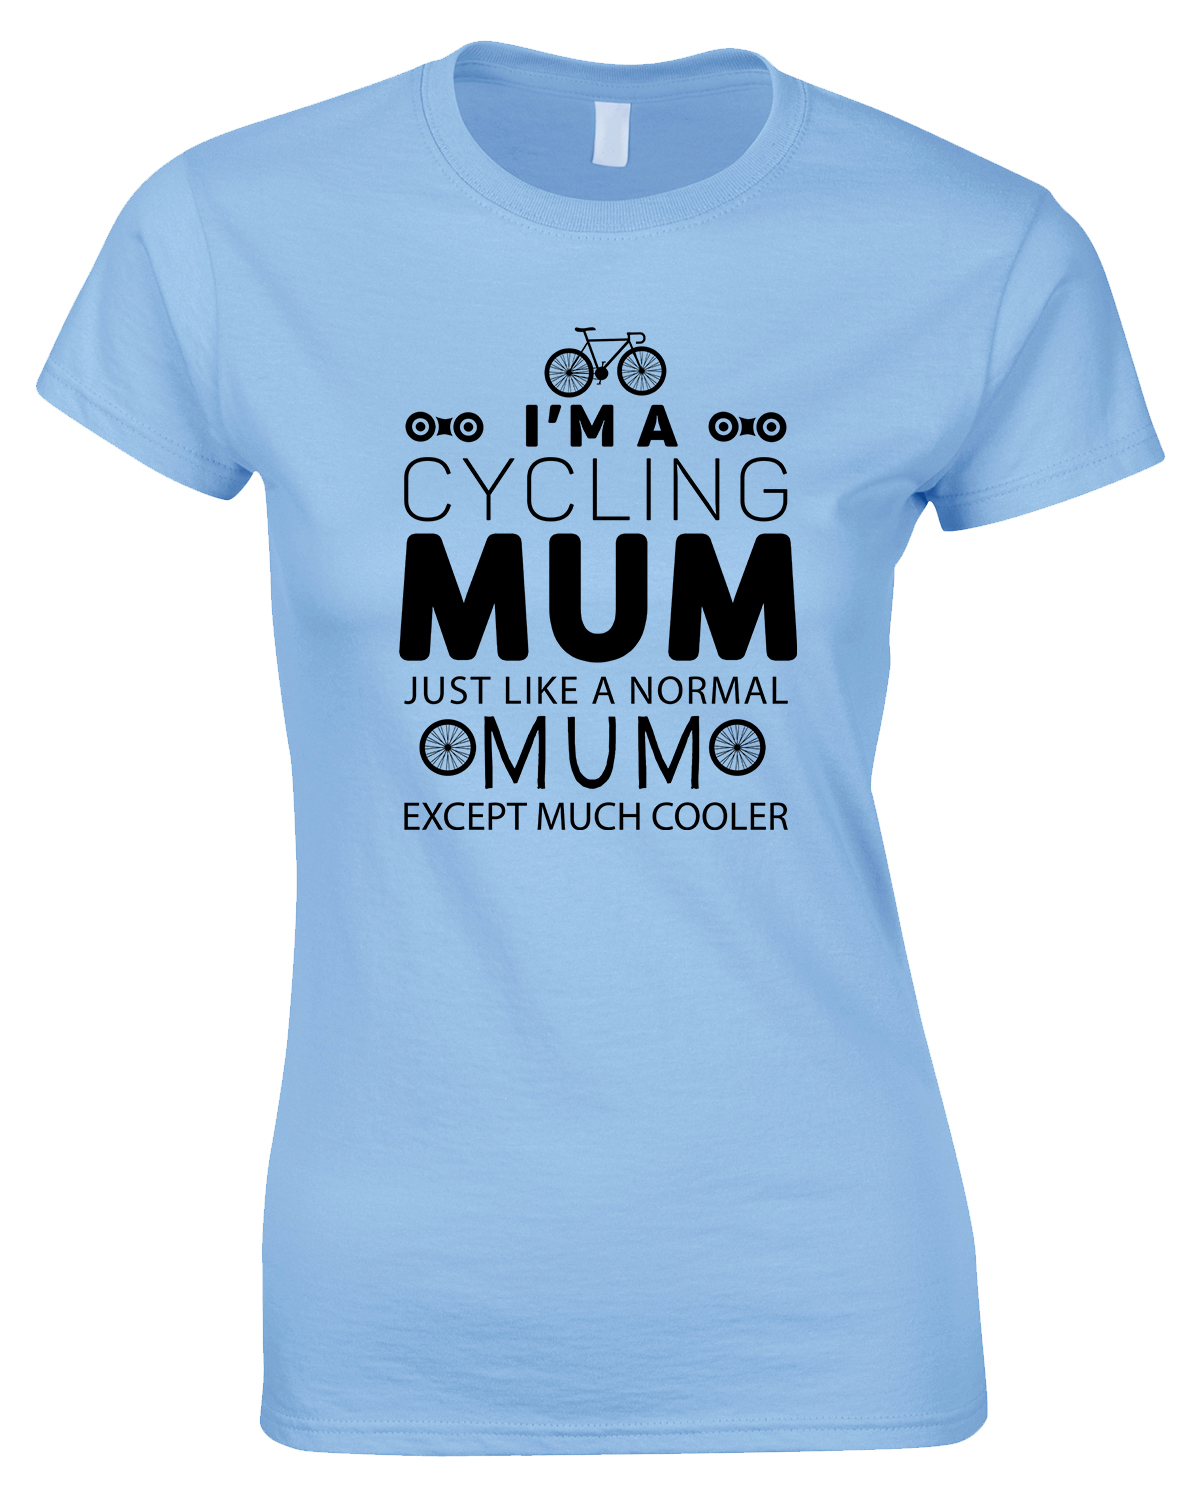 I'm A Cycling Mum Just Like A Normal Mum-Ladies T Shirt